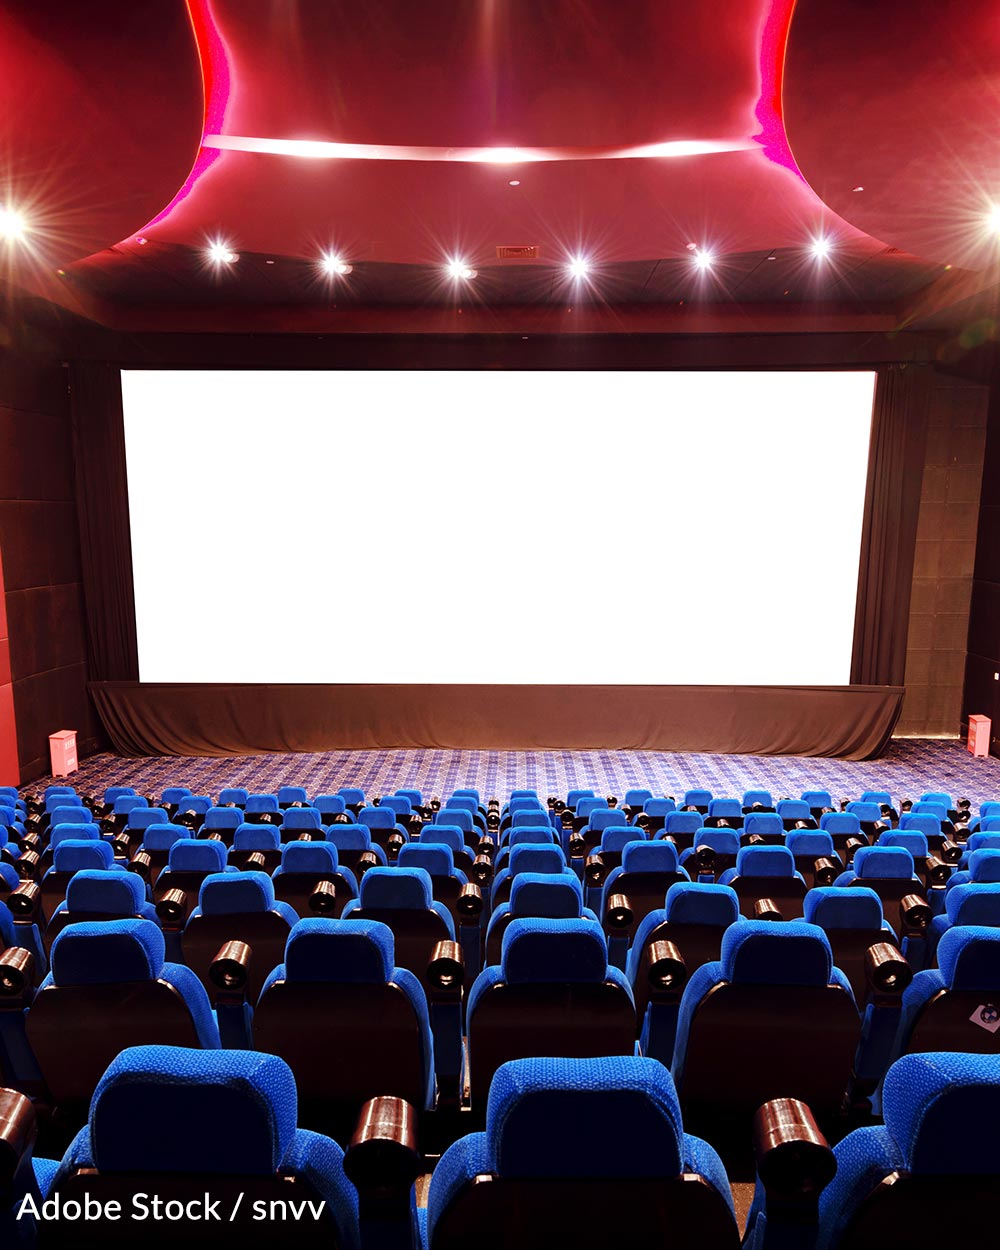 Does your local movie theater offer a sensory-friendly experience?